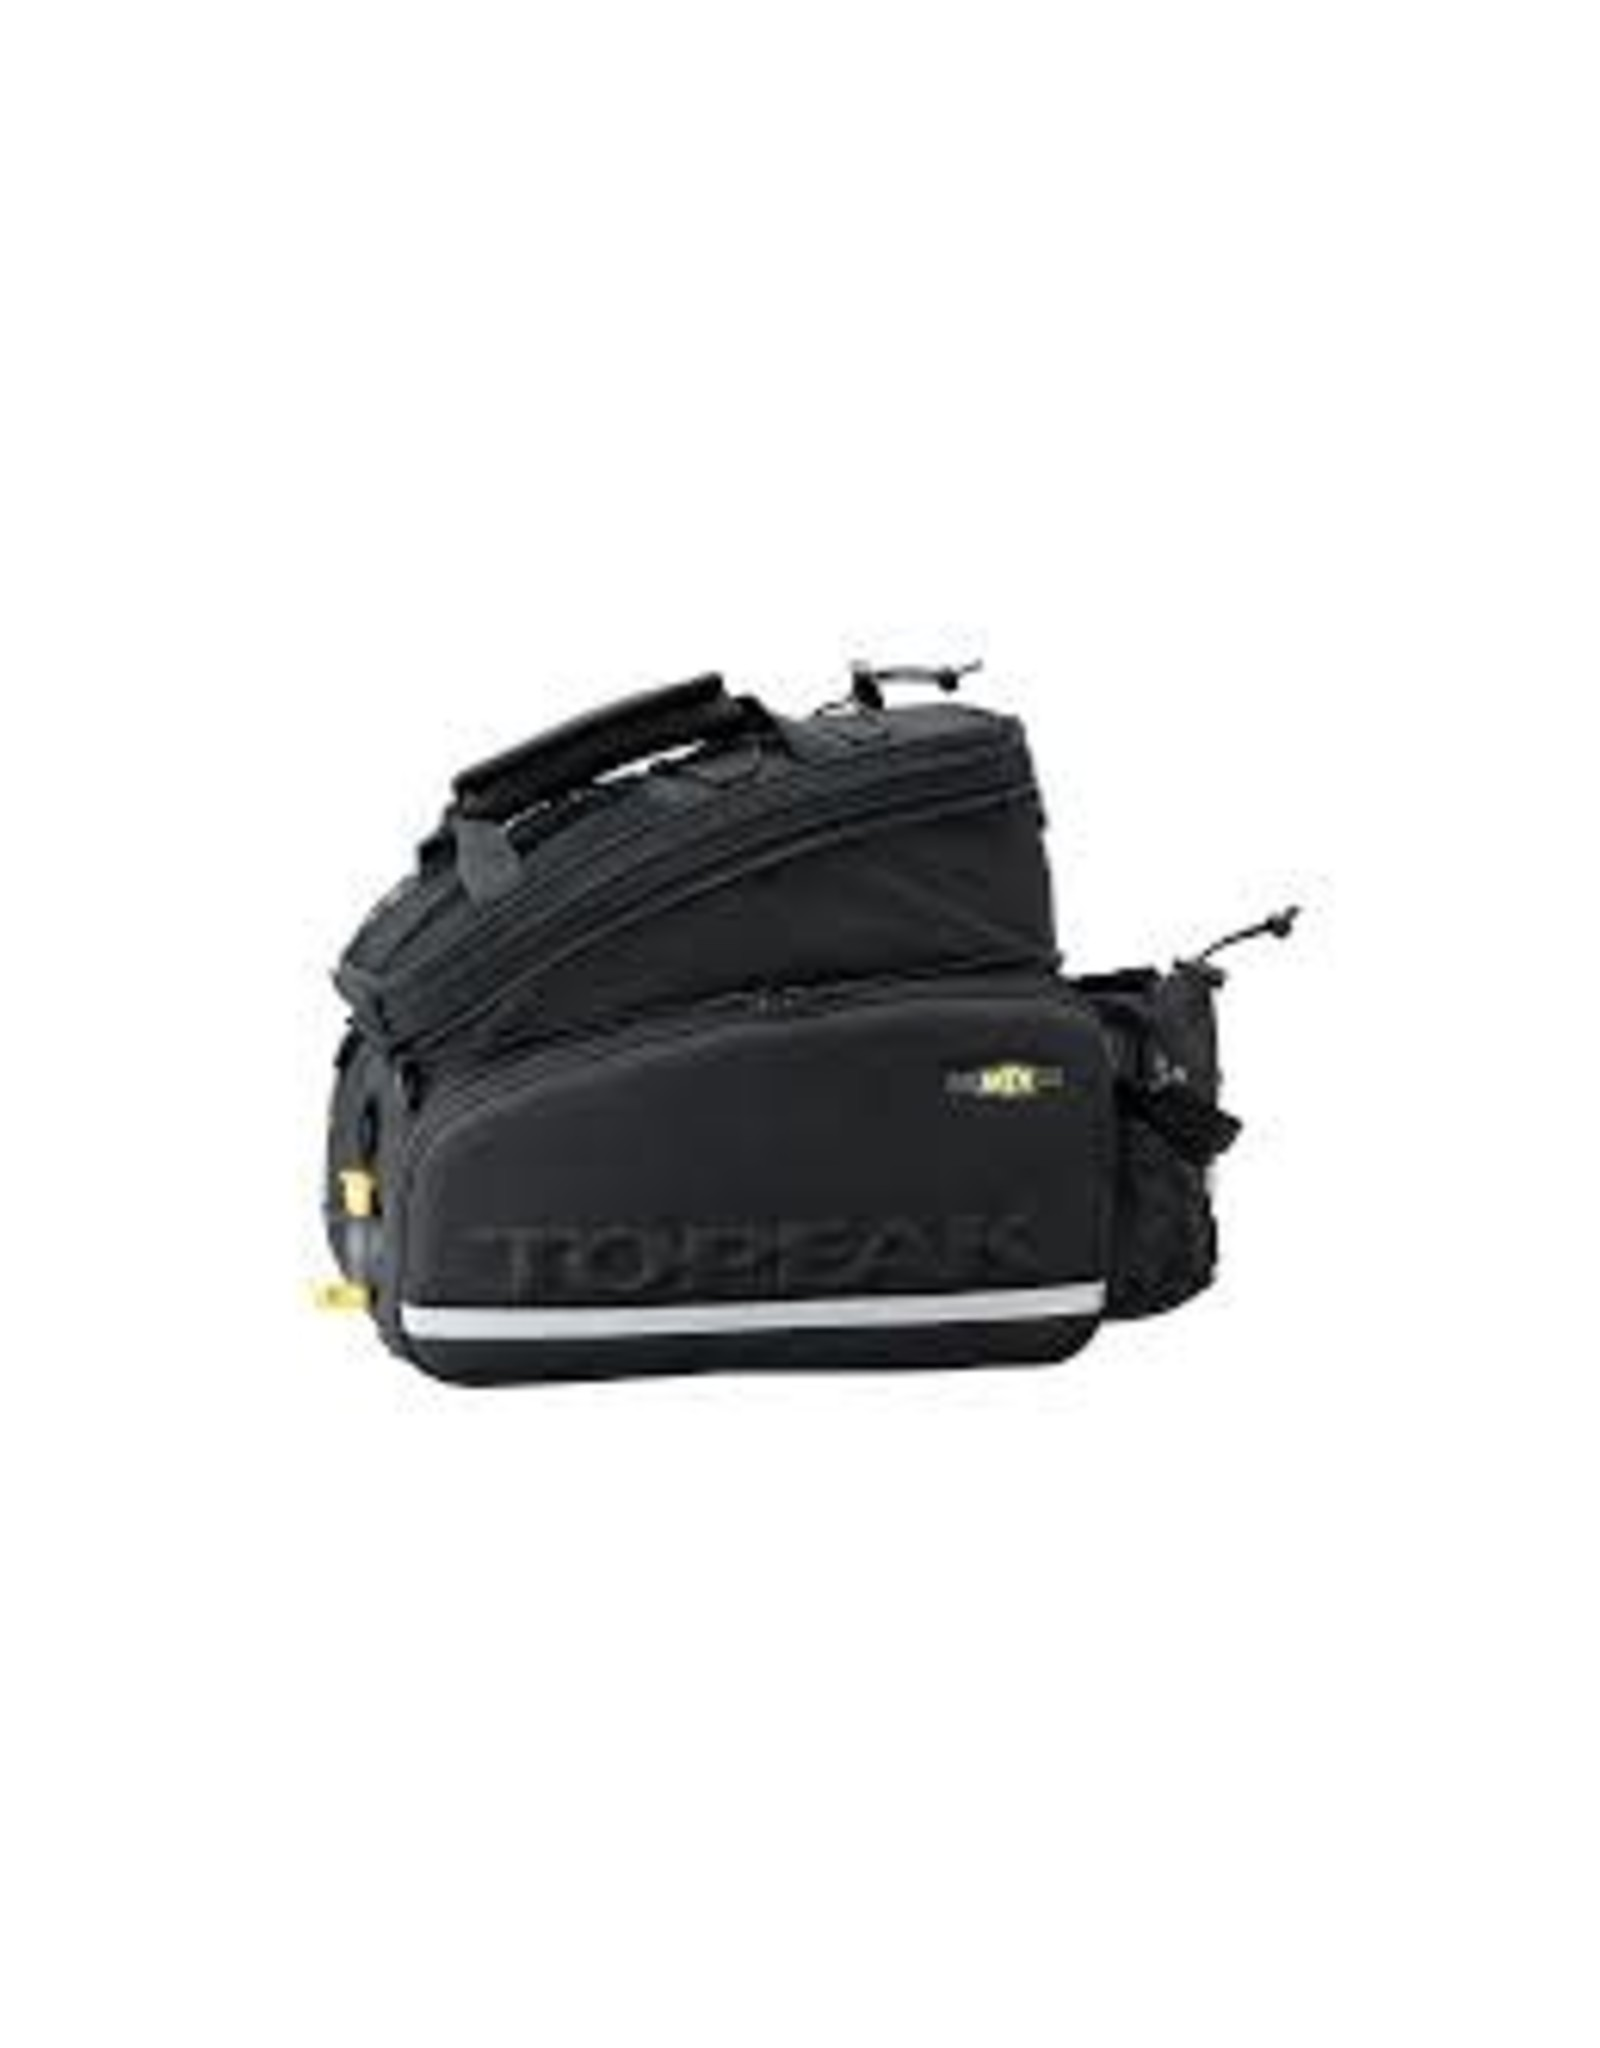 Topeak Bag Topeak MTX Trunkbag DX Black